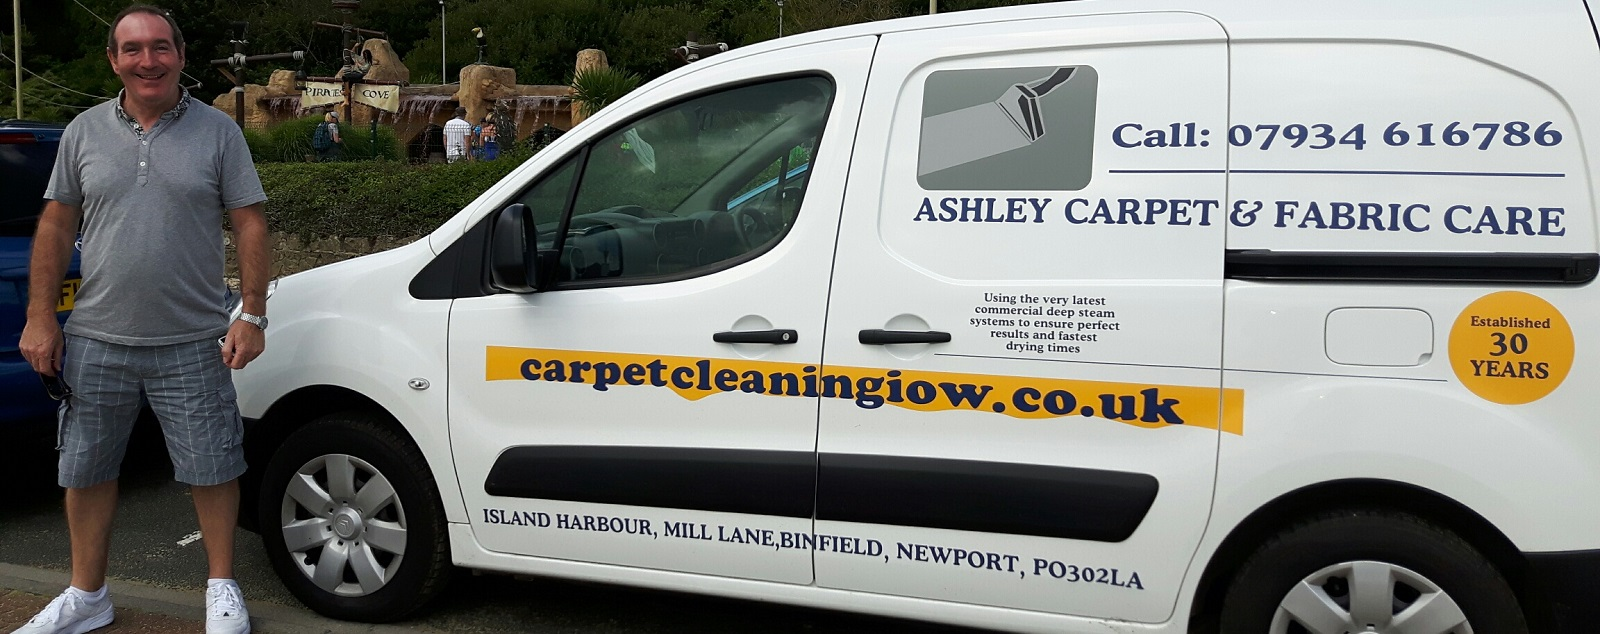 carpet cleaning iow